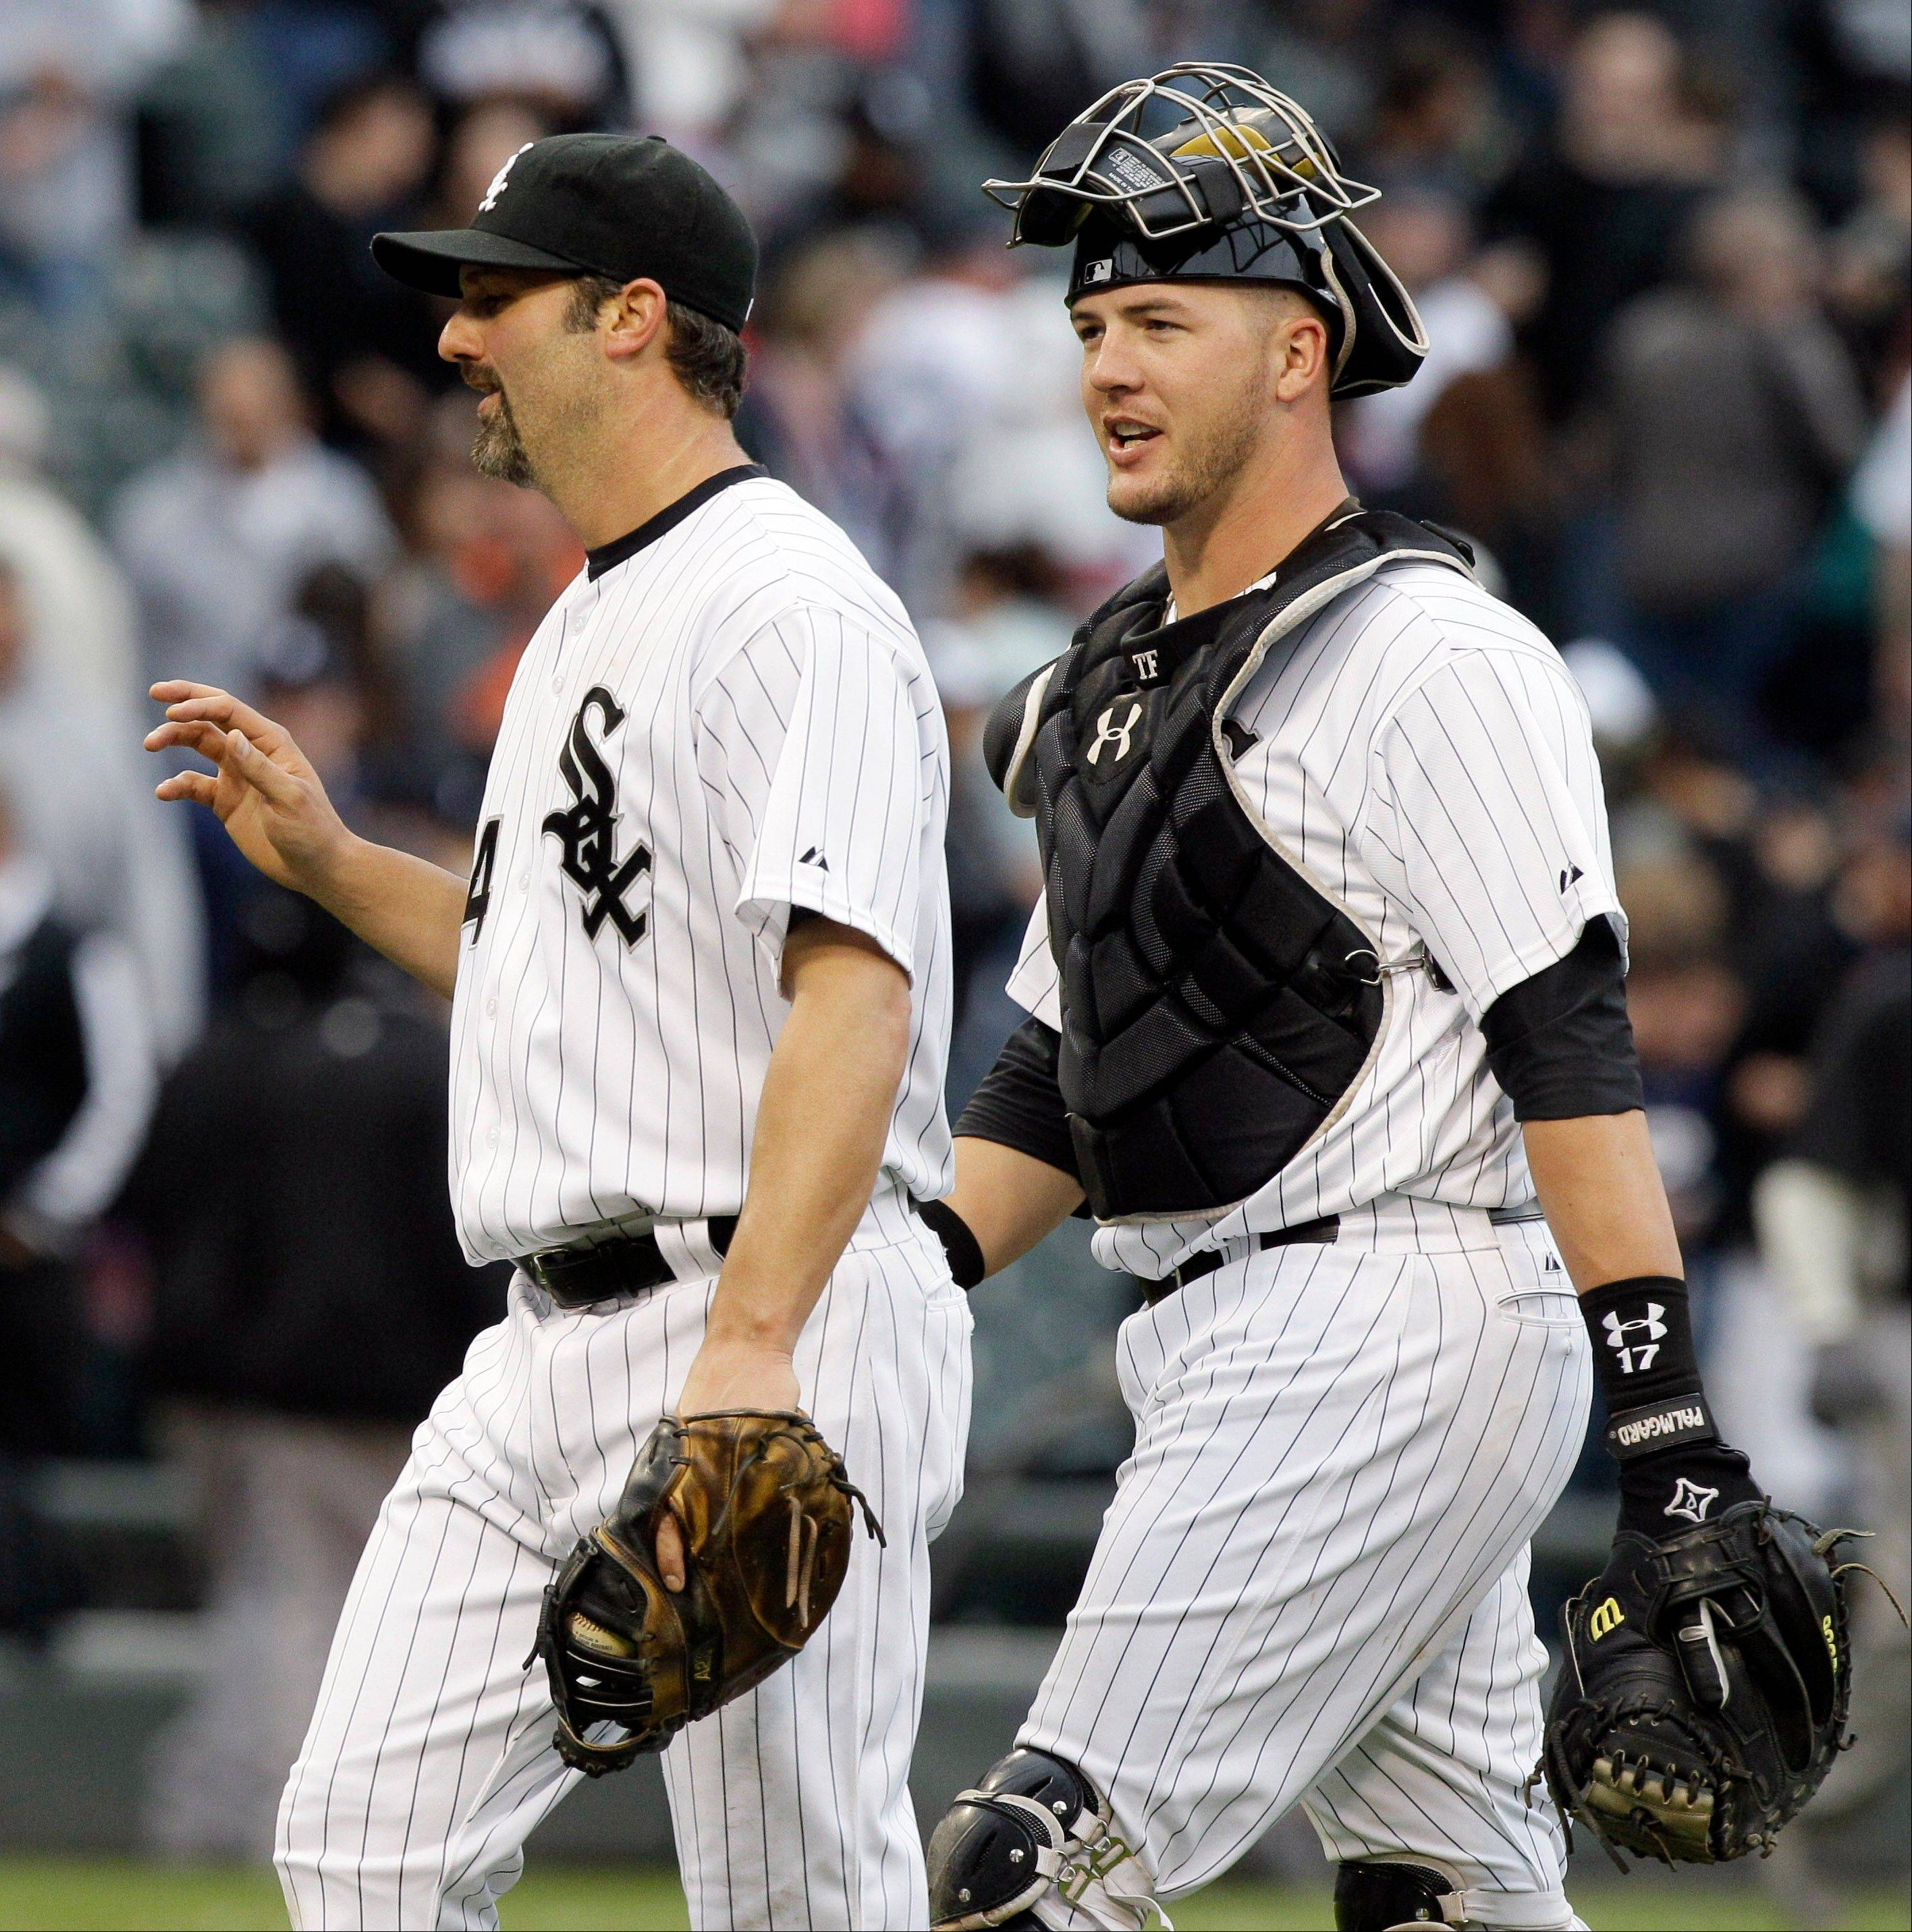 Chicago White Sox catcher Tyler Flowers, right, smiles as he talks to Paul Konerko after the White Sox defeated the Detroit Tigers 5-1 in a baseball game in Chicago, Saturday, April 14, 2012.